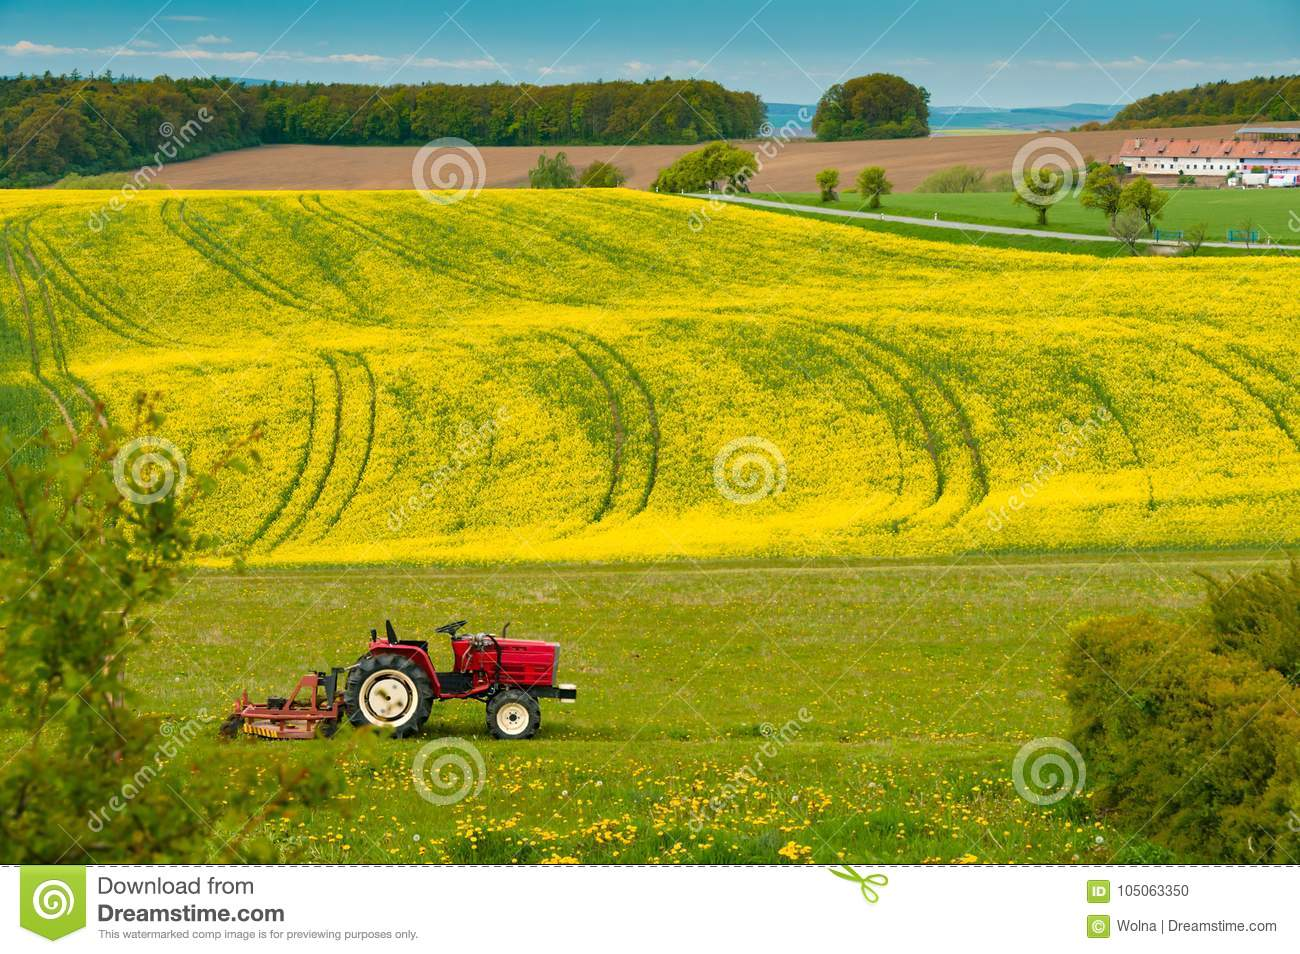 Download Tractor Is Working On The Field Stock Photo - Image of agriculture, season: 105063350